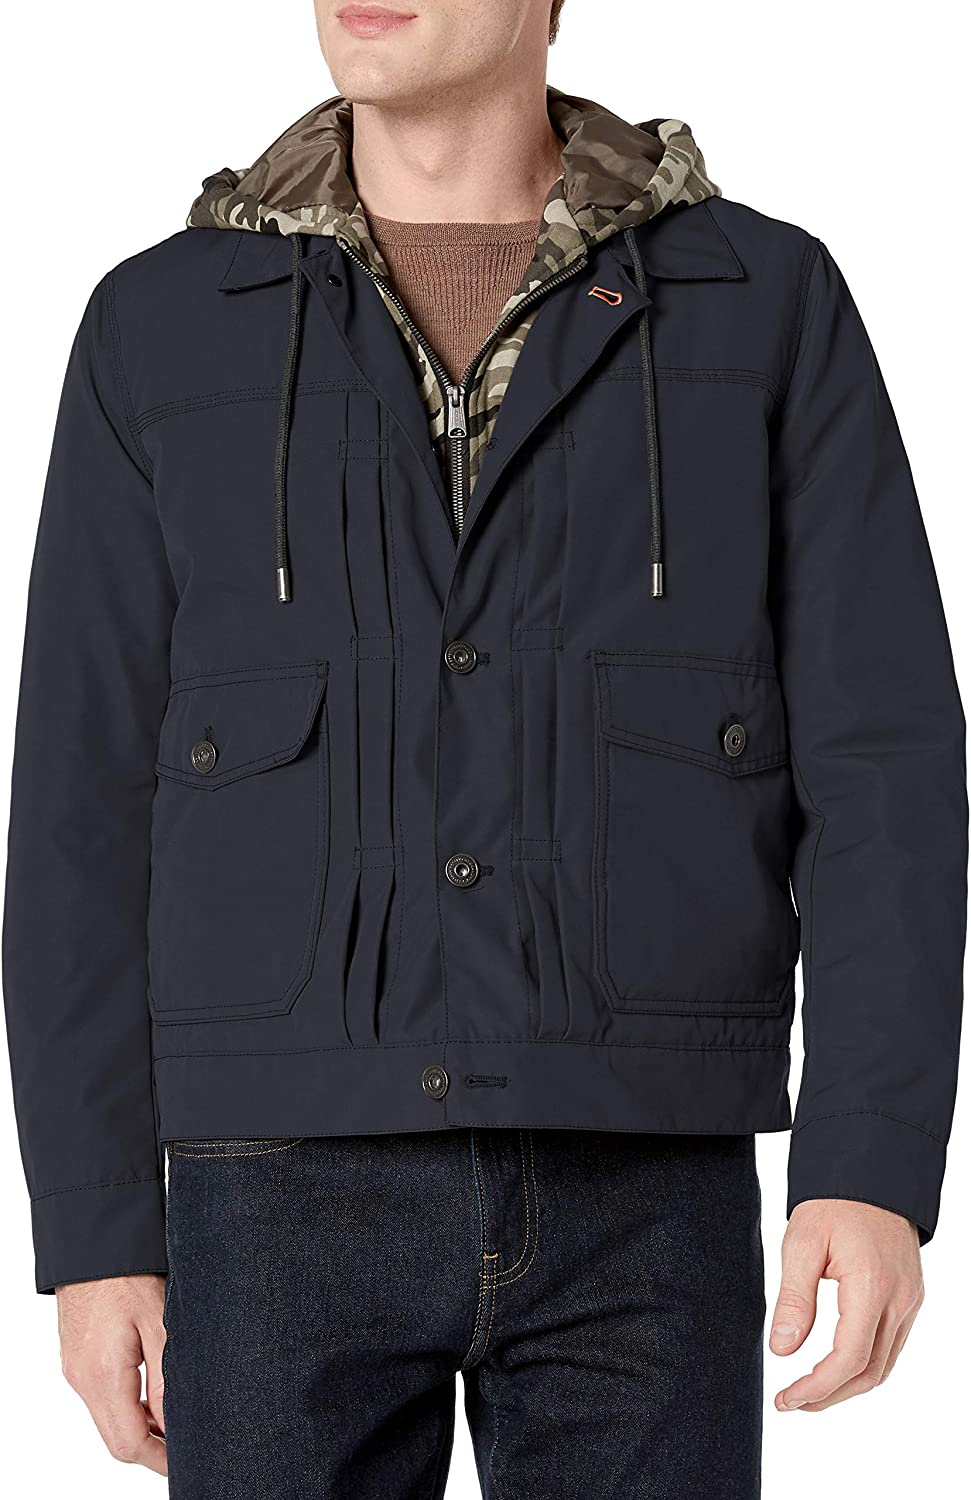 Lucky Brand Men's 2021 new Stark Button High quality new Jacket Fleece Front Exposed with